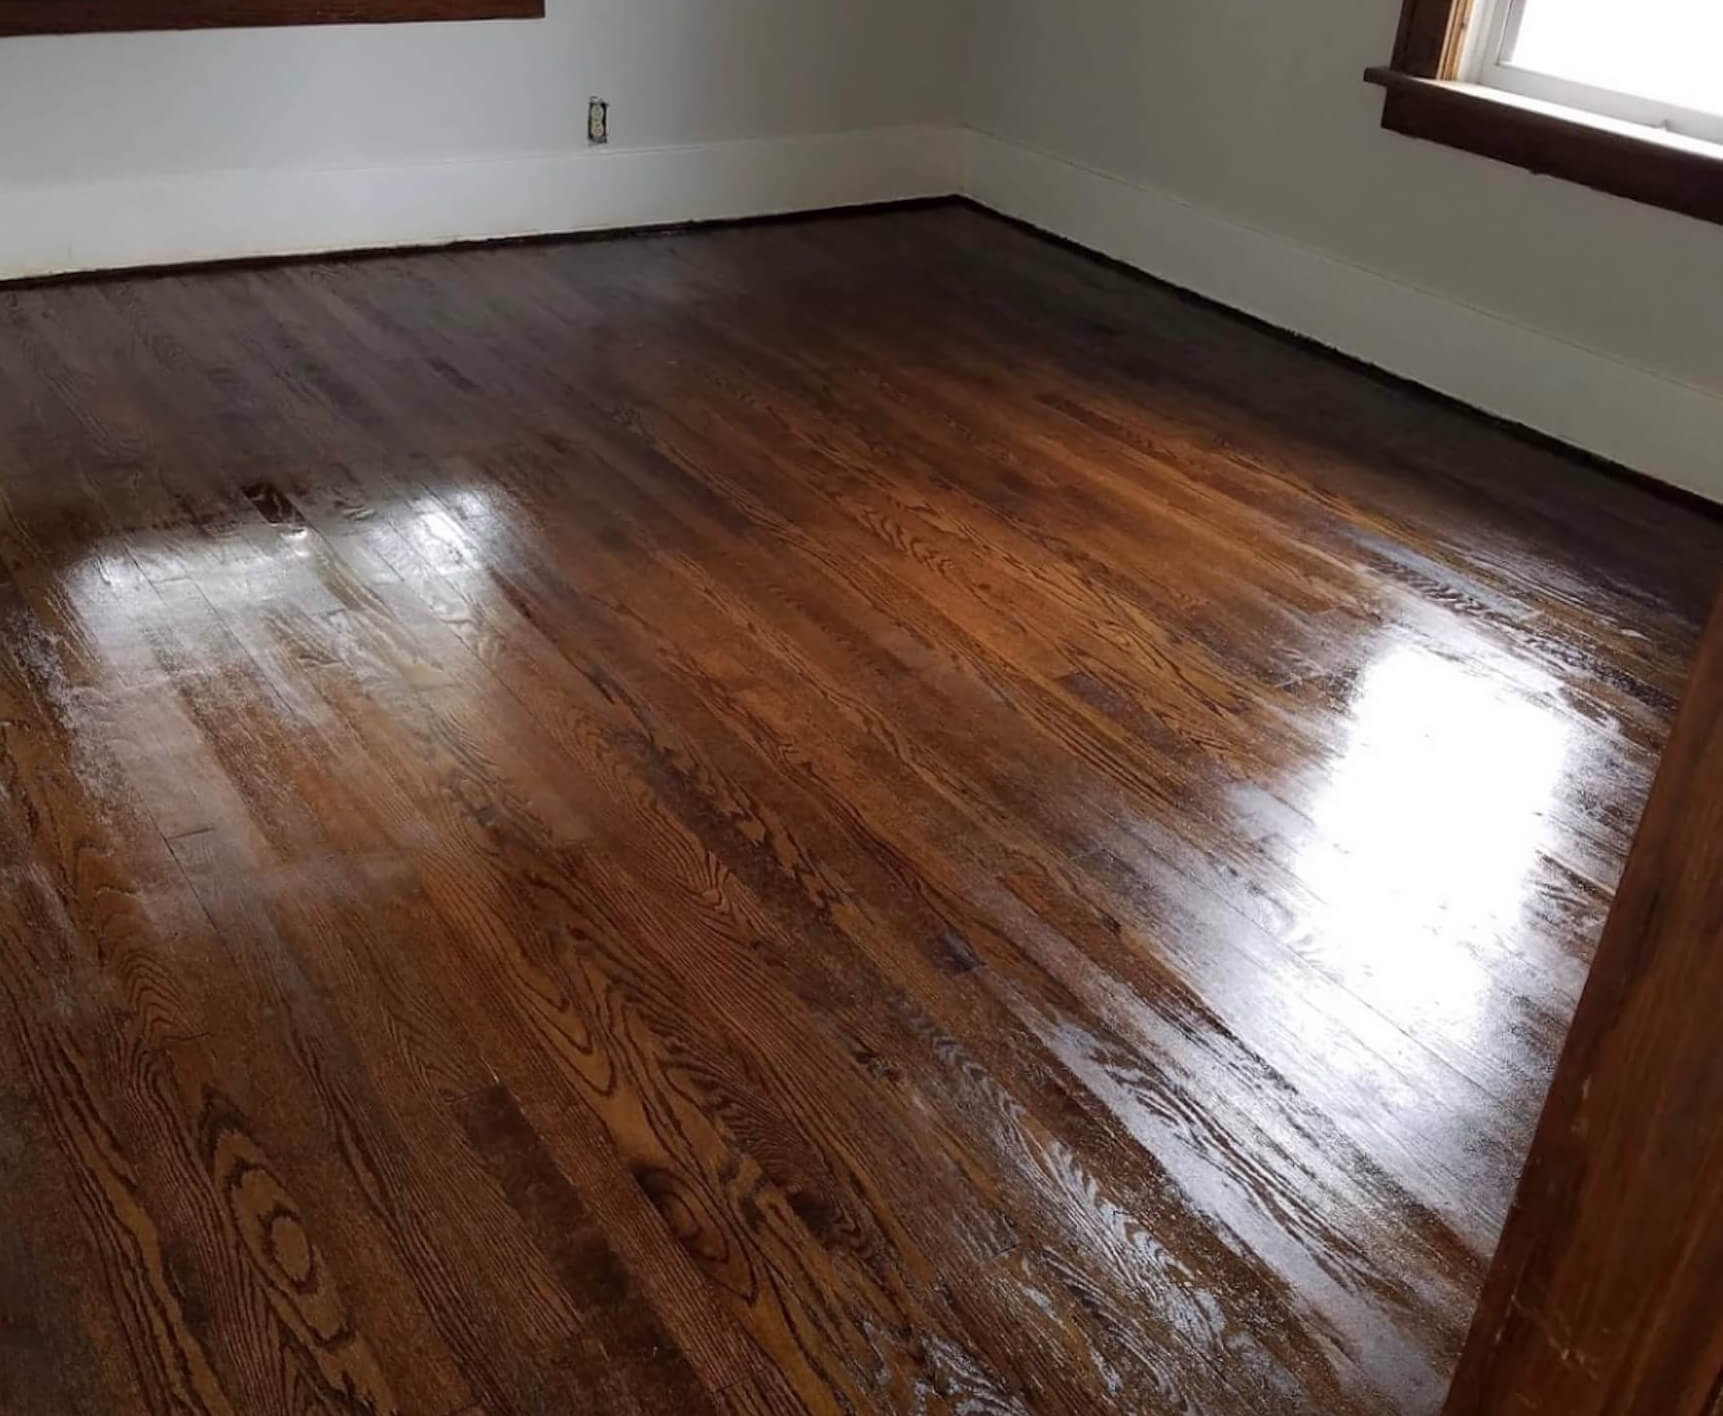 A refinished hardwood floor with a fresh coat of Fabulous Floors Alabama stain.